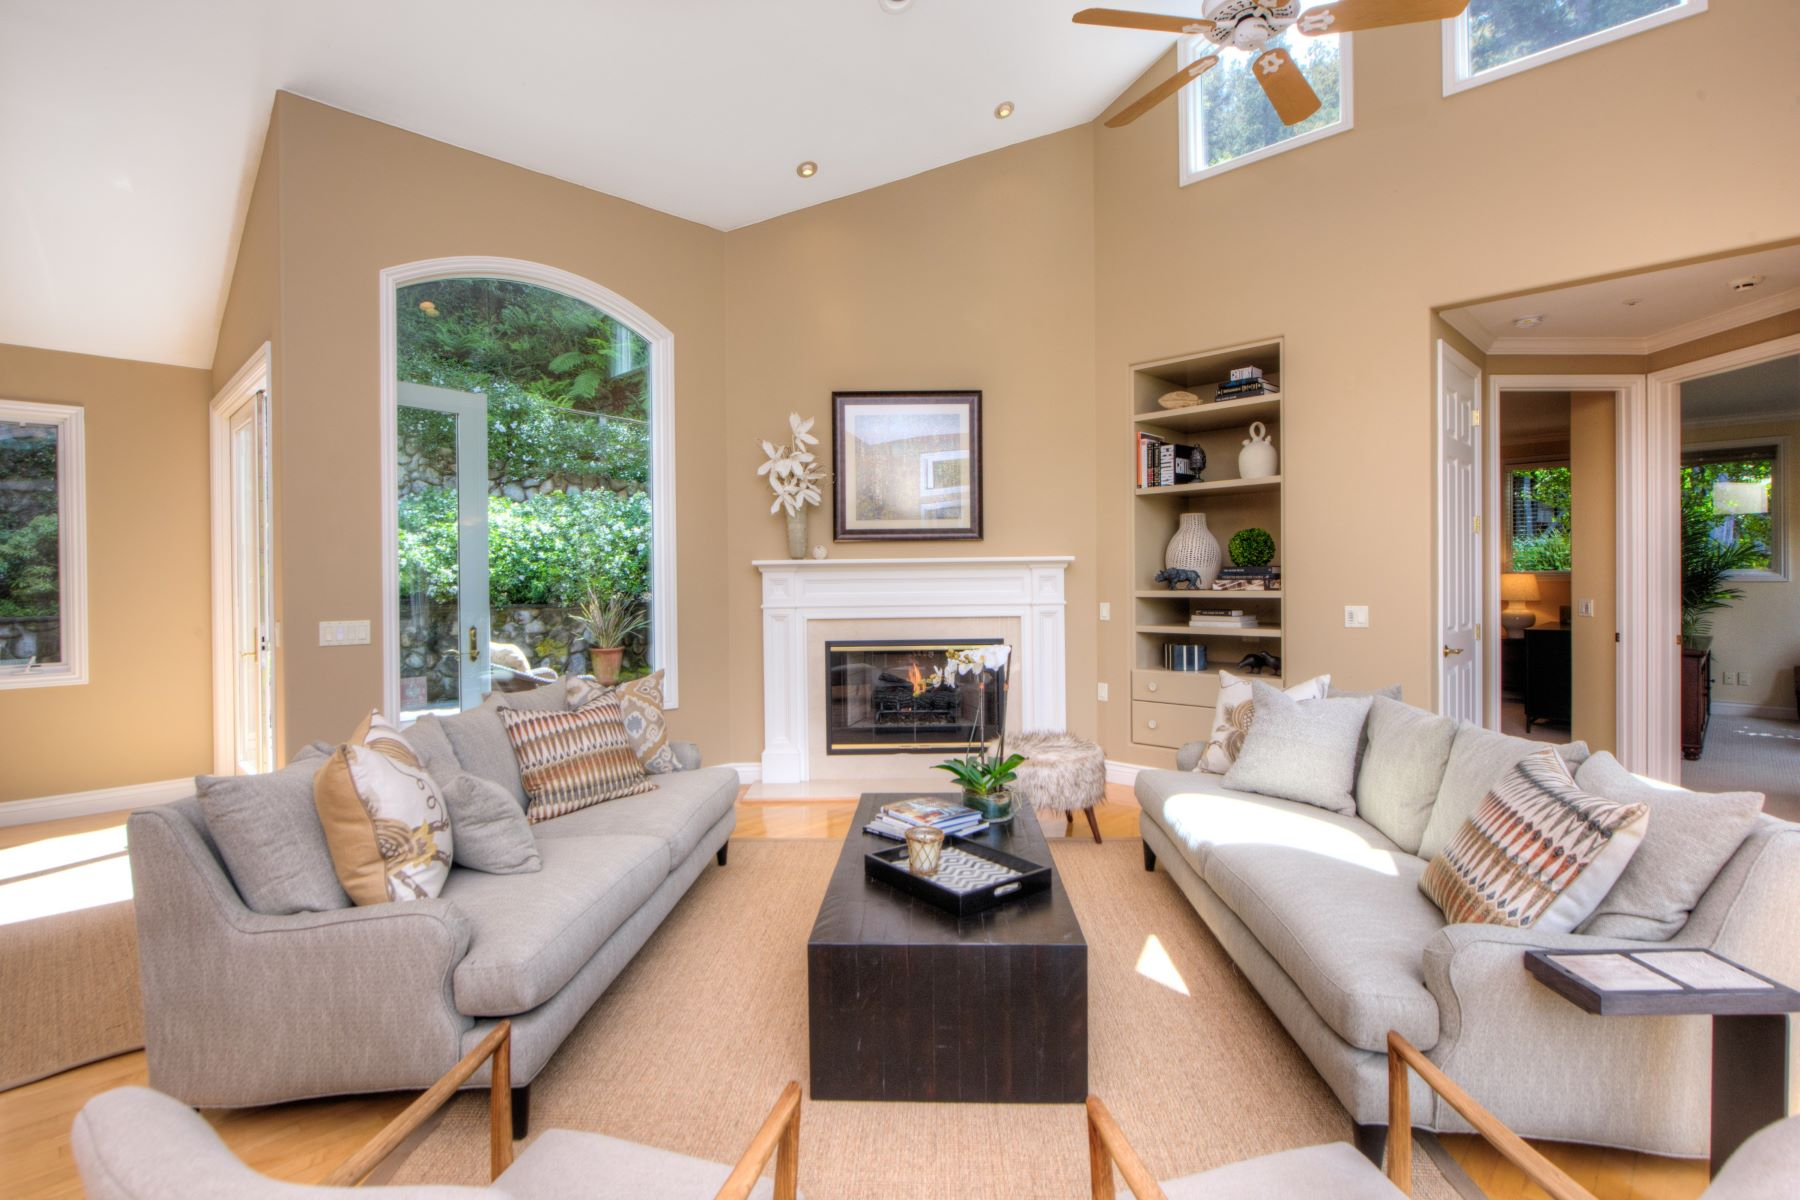 Single Family Home for Sale at Magic in Mill Valley 136 Marion Avenue Mill Valley, California, 94941 United States